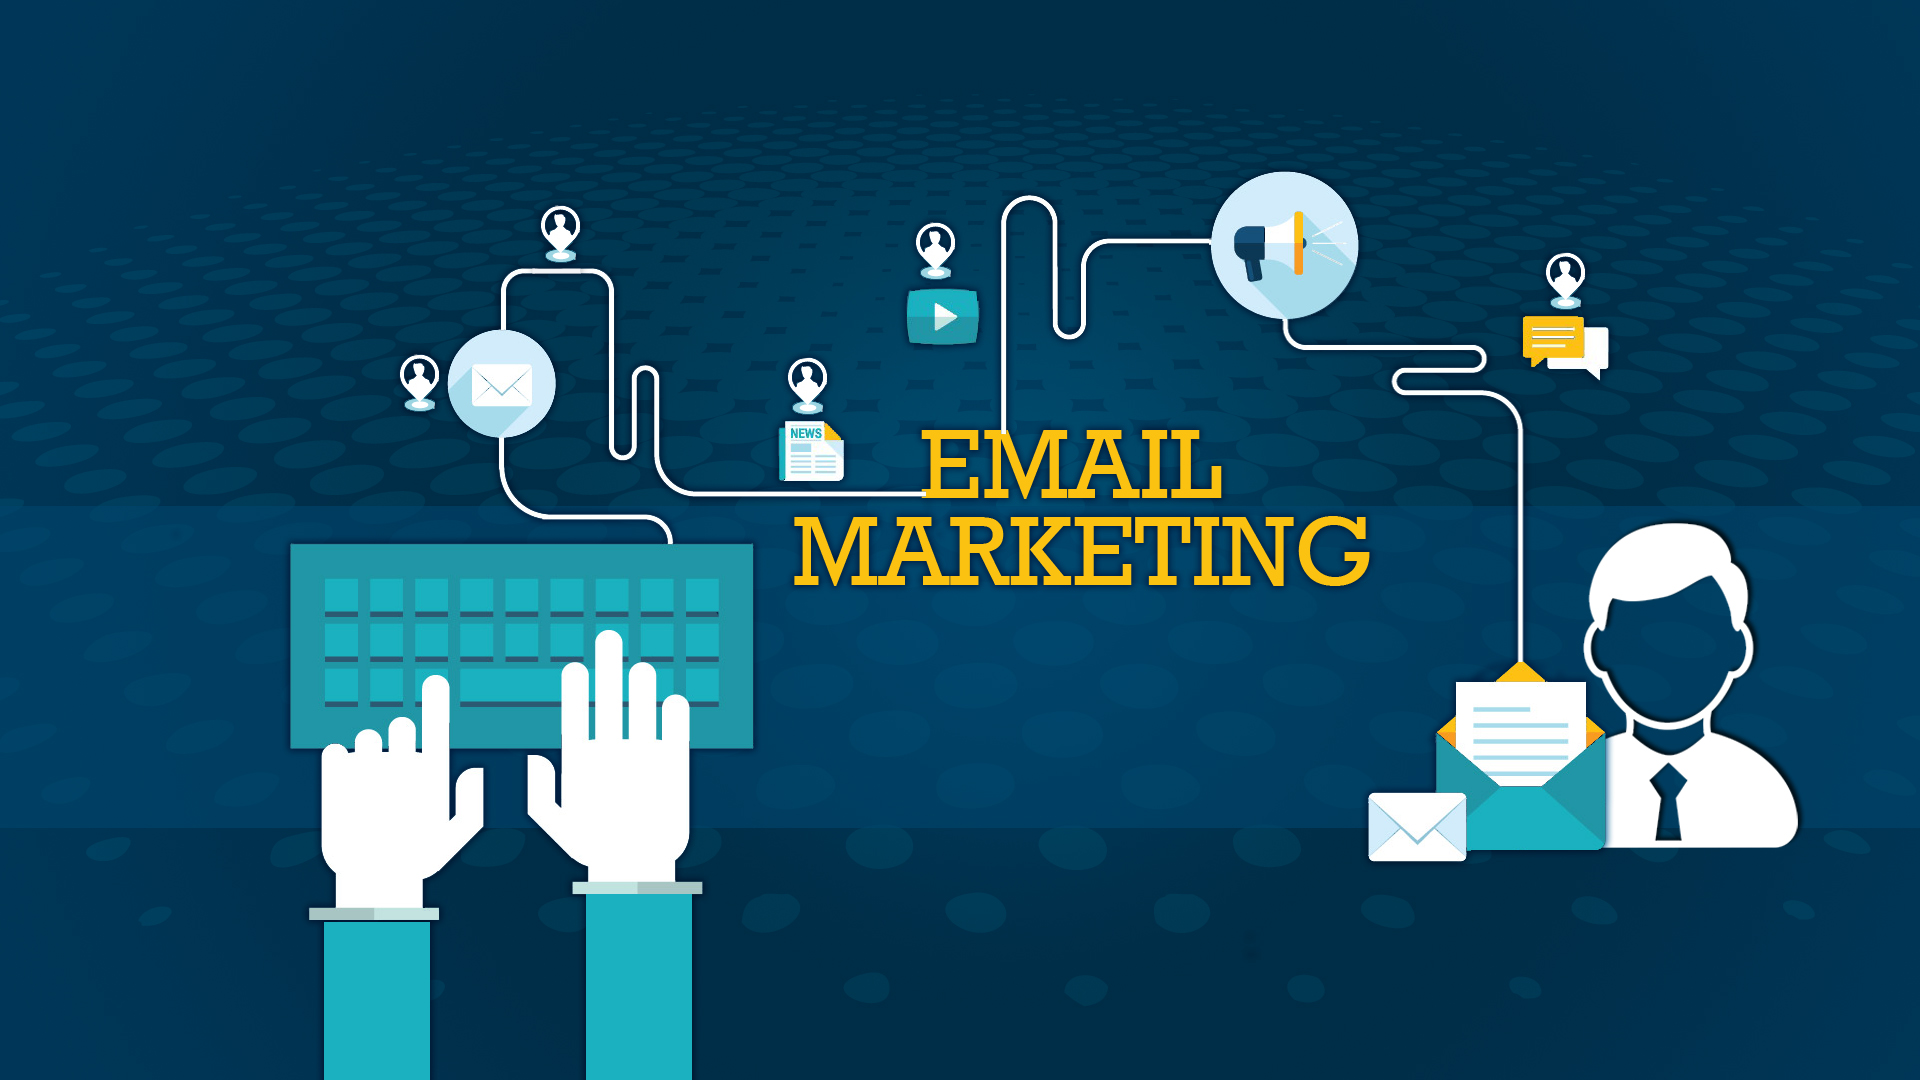 Top tips to write an engaging email zoomyourtraffic blog reach how many emails do you get every day do you open each and every email that you get well most of us have inbox featuring a huge list of unread mails altavistaventures Choice Image